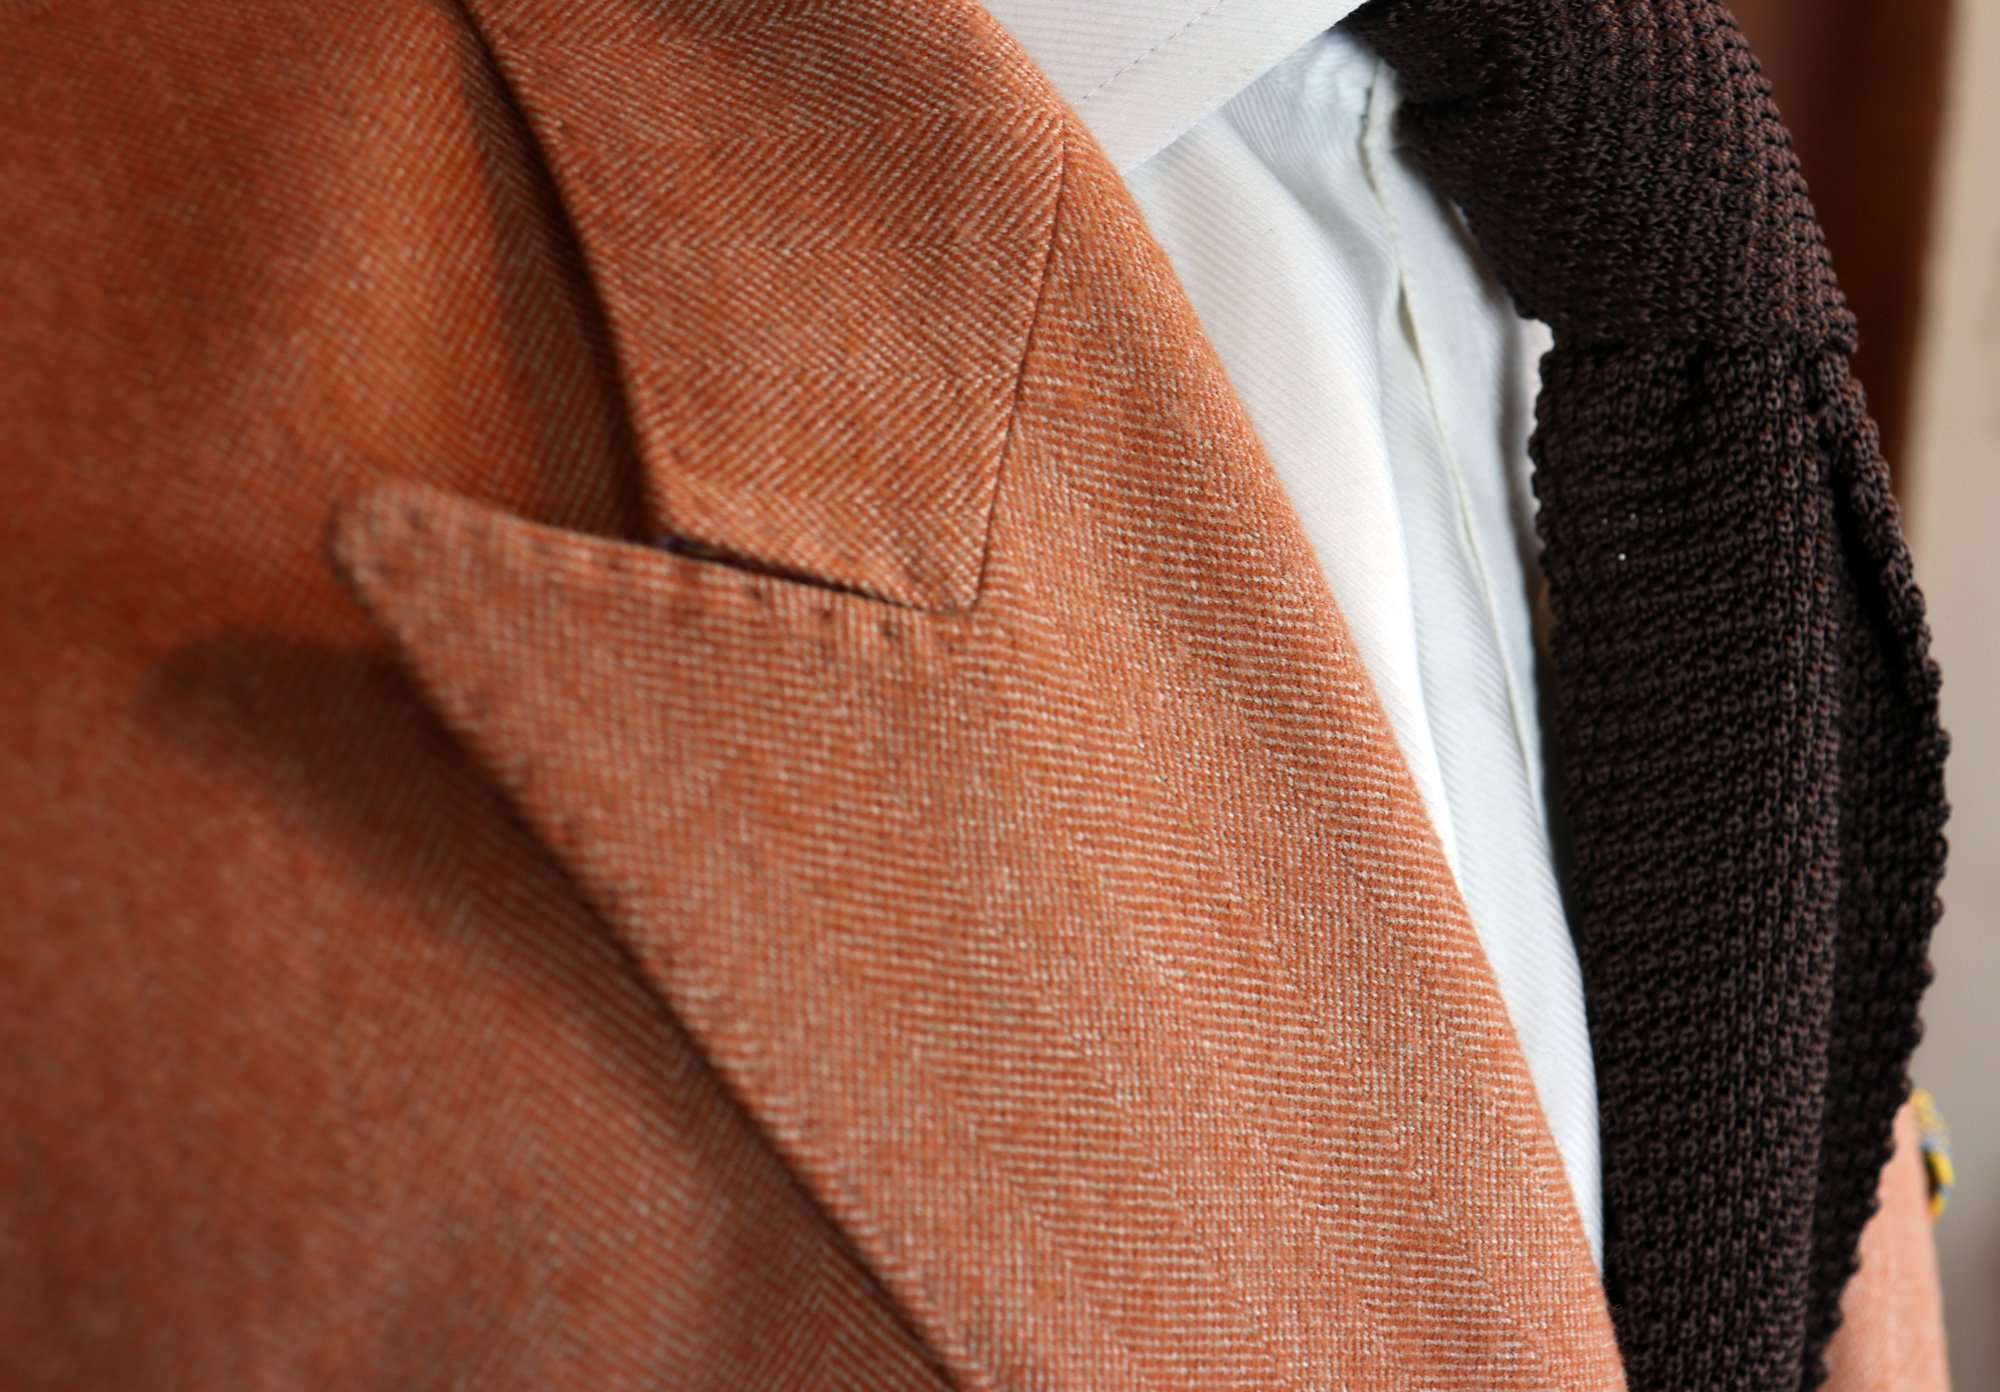 amf-stiching-made-to-measure-suits